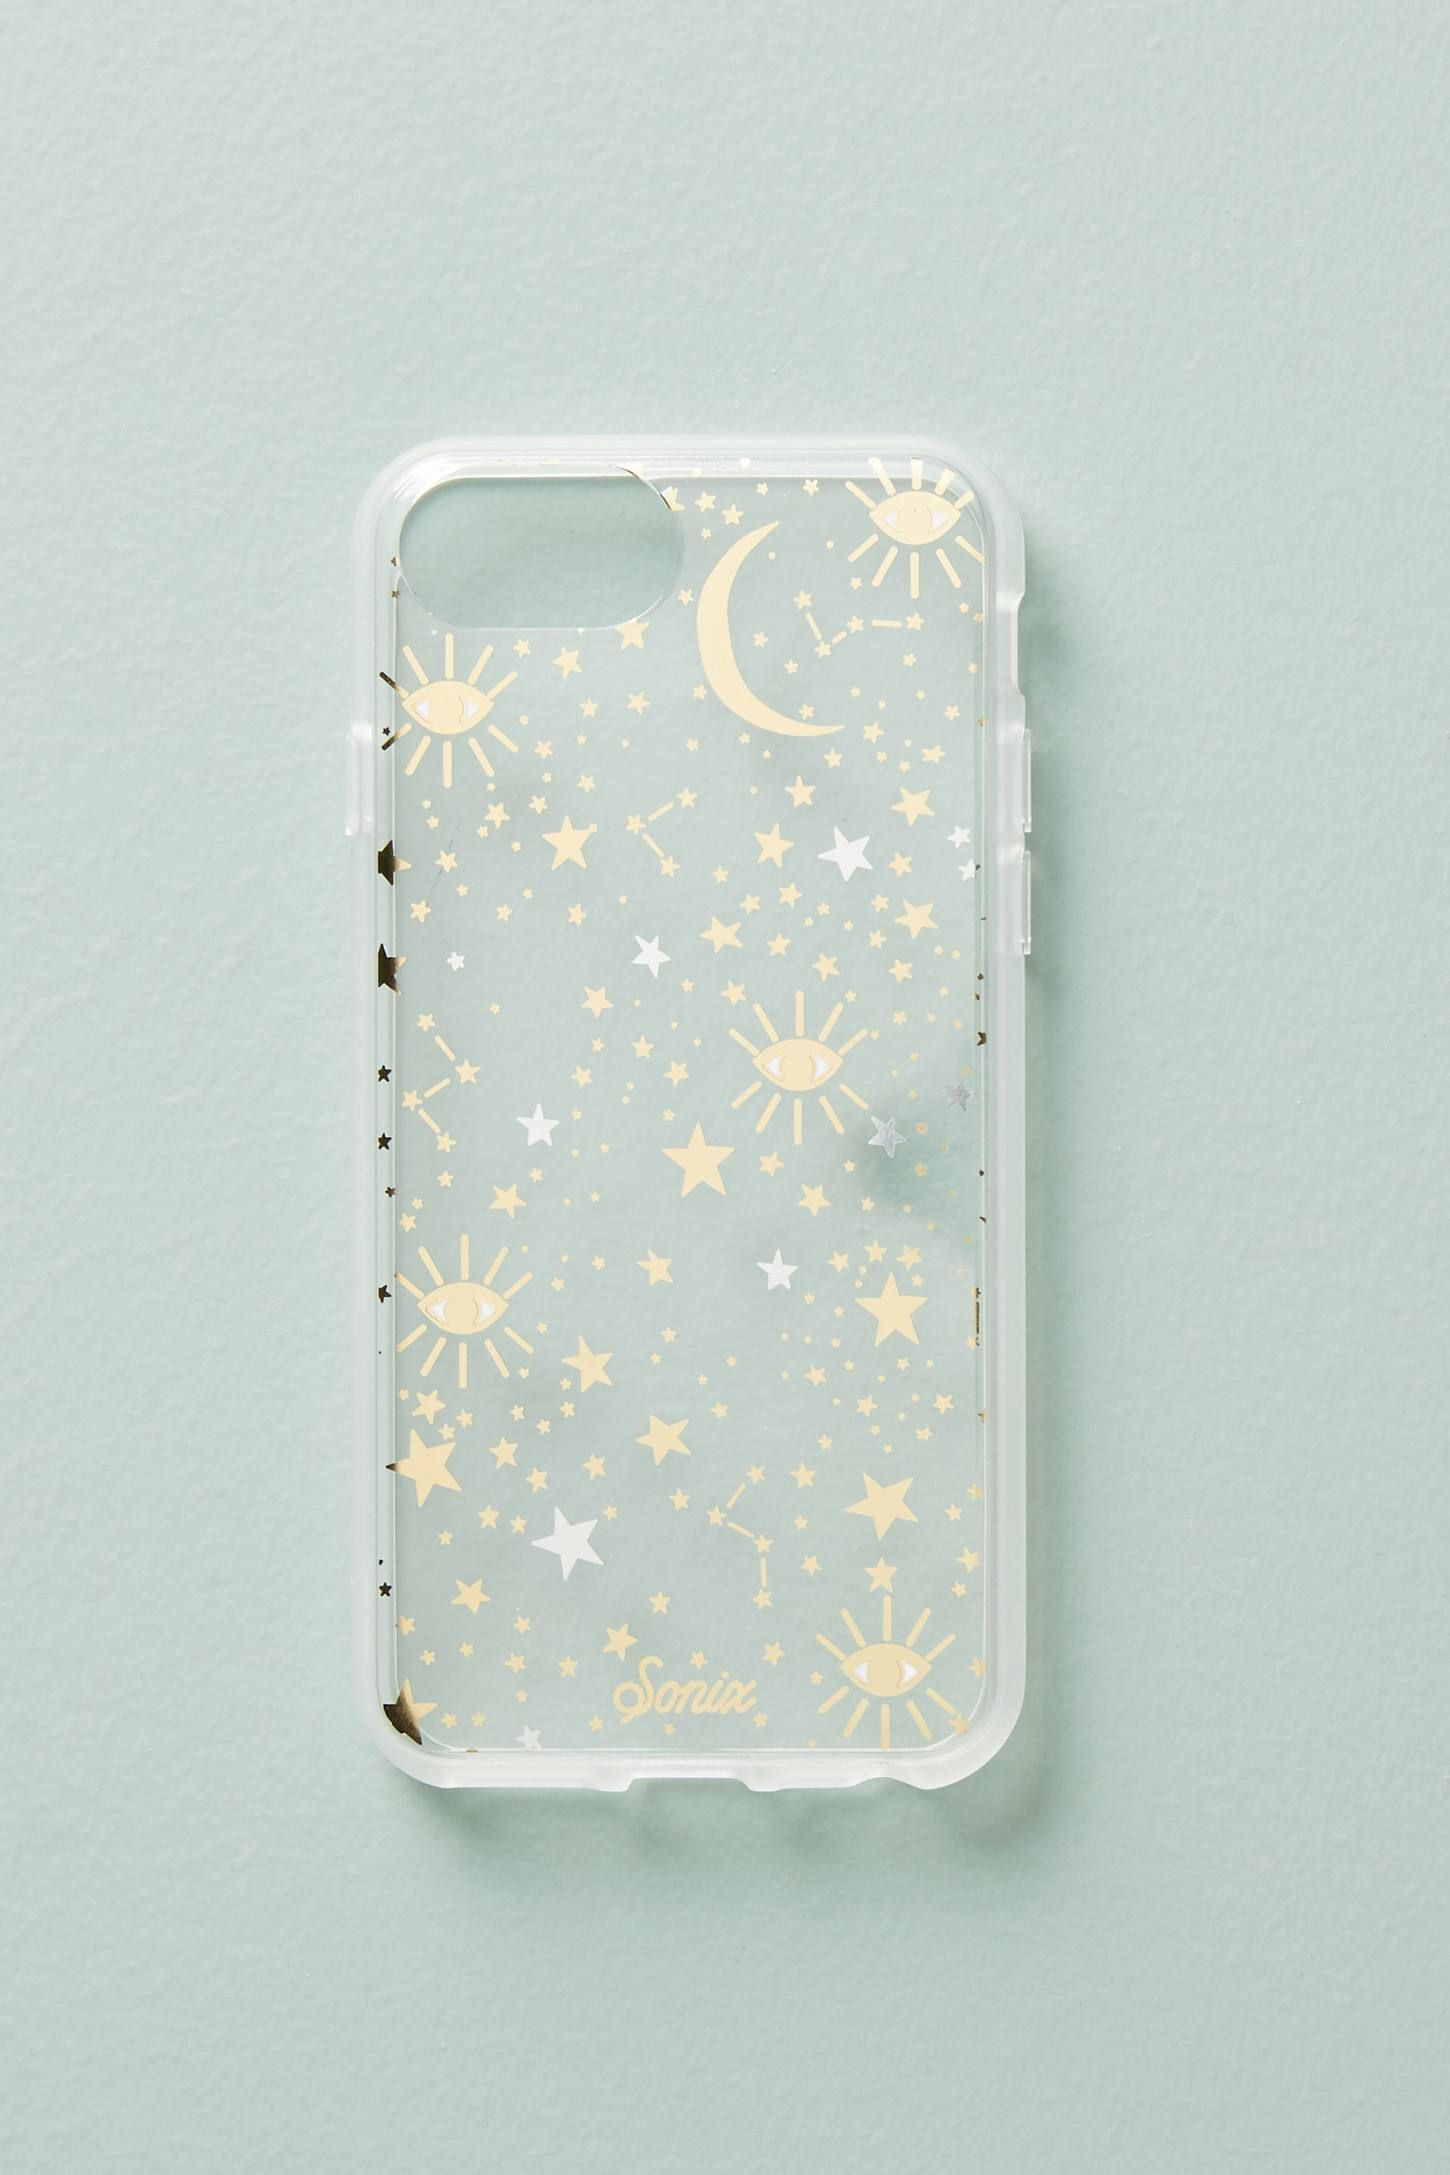 13bb74732b Shop the Sonix Celestial iPhone 6/6s/7/8 Case and more Anthropologie at  Anthropologie today. Read customer reviews, discover product details and  more.